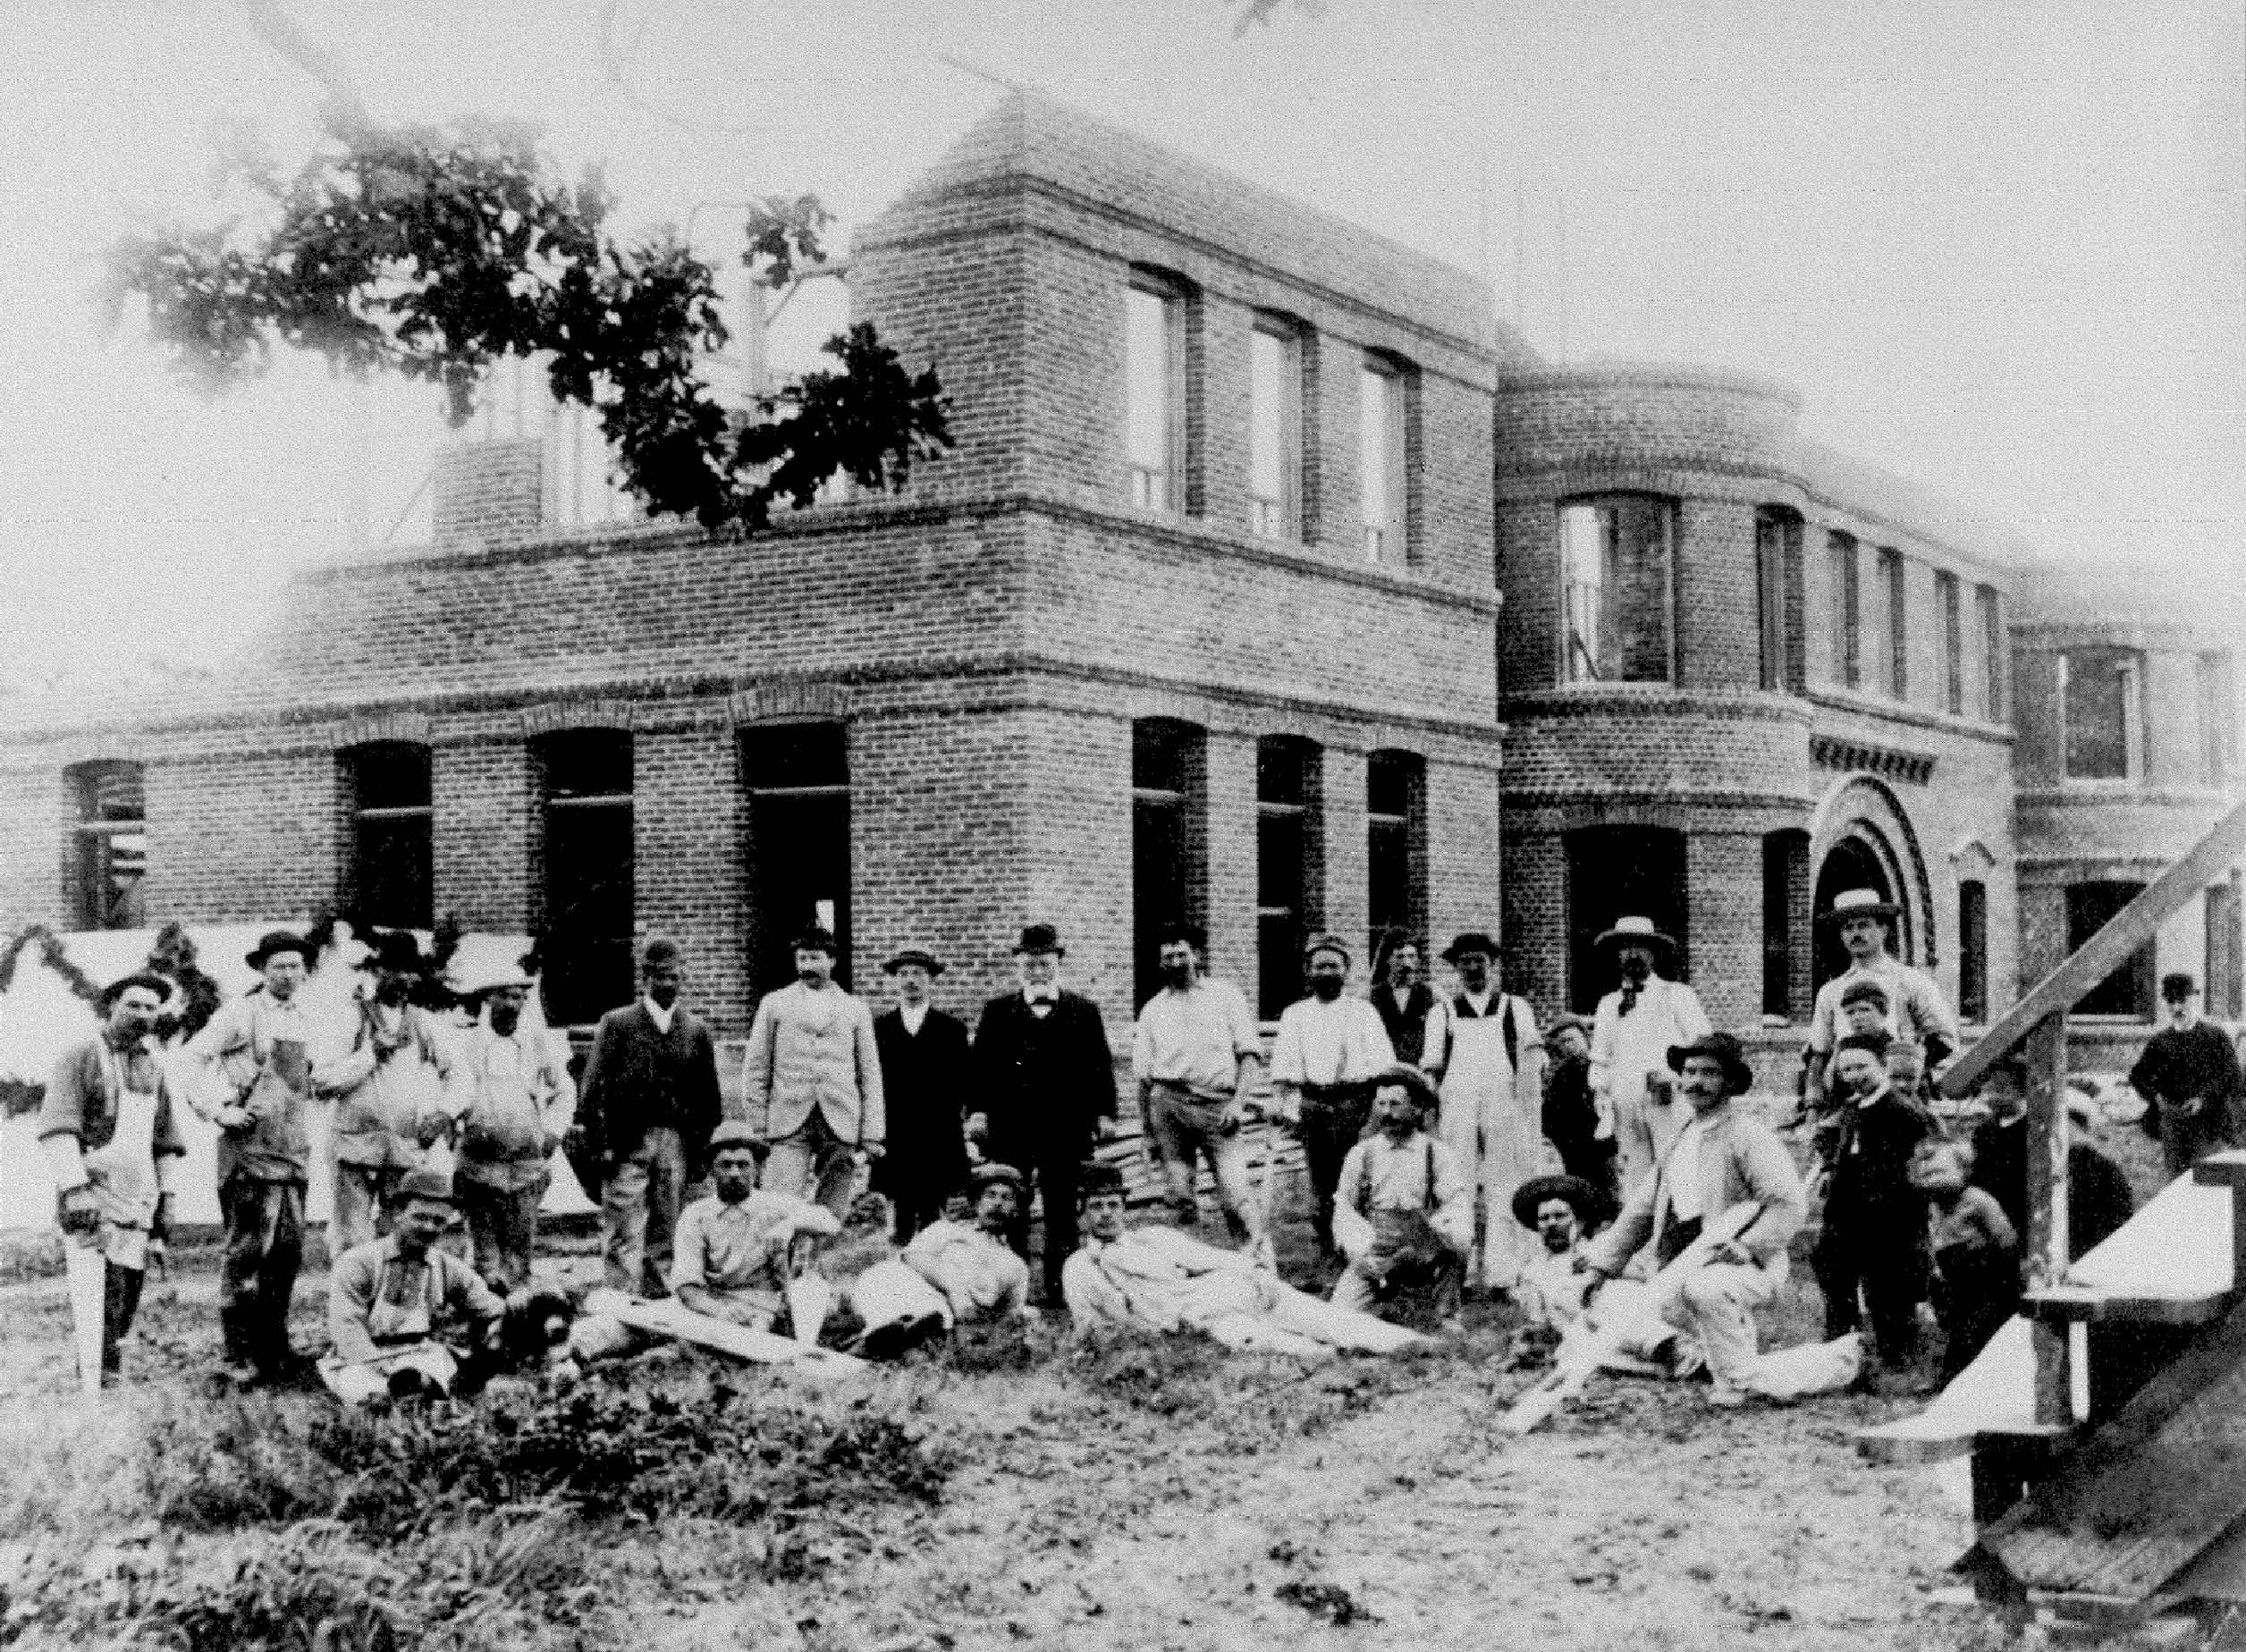 Construction of The Taylor Building in 1893